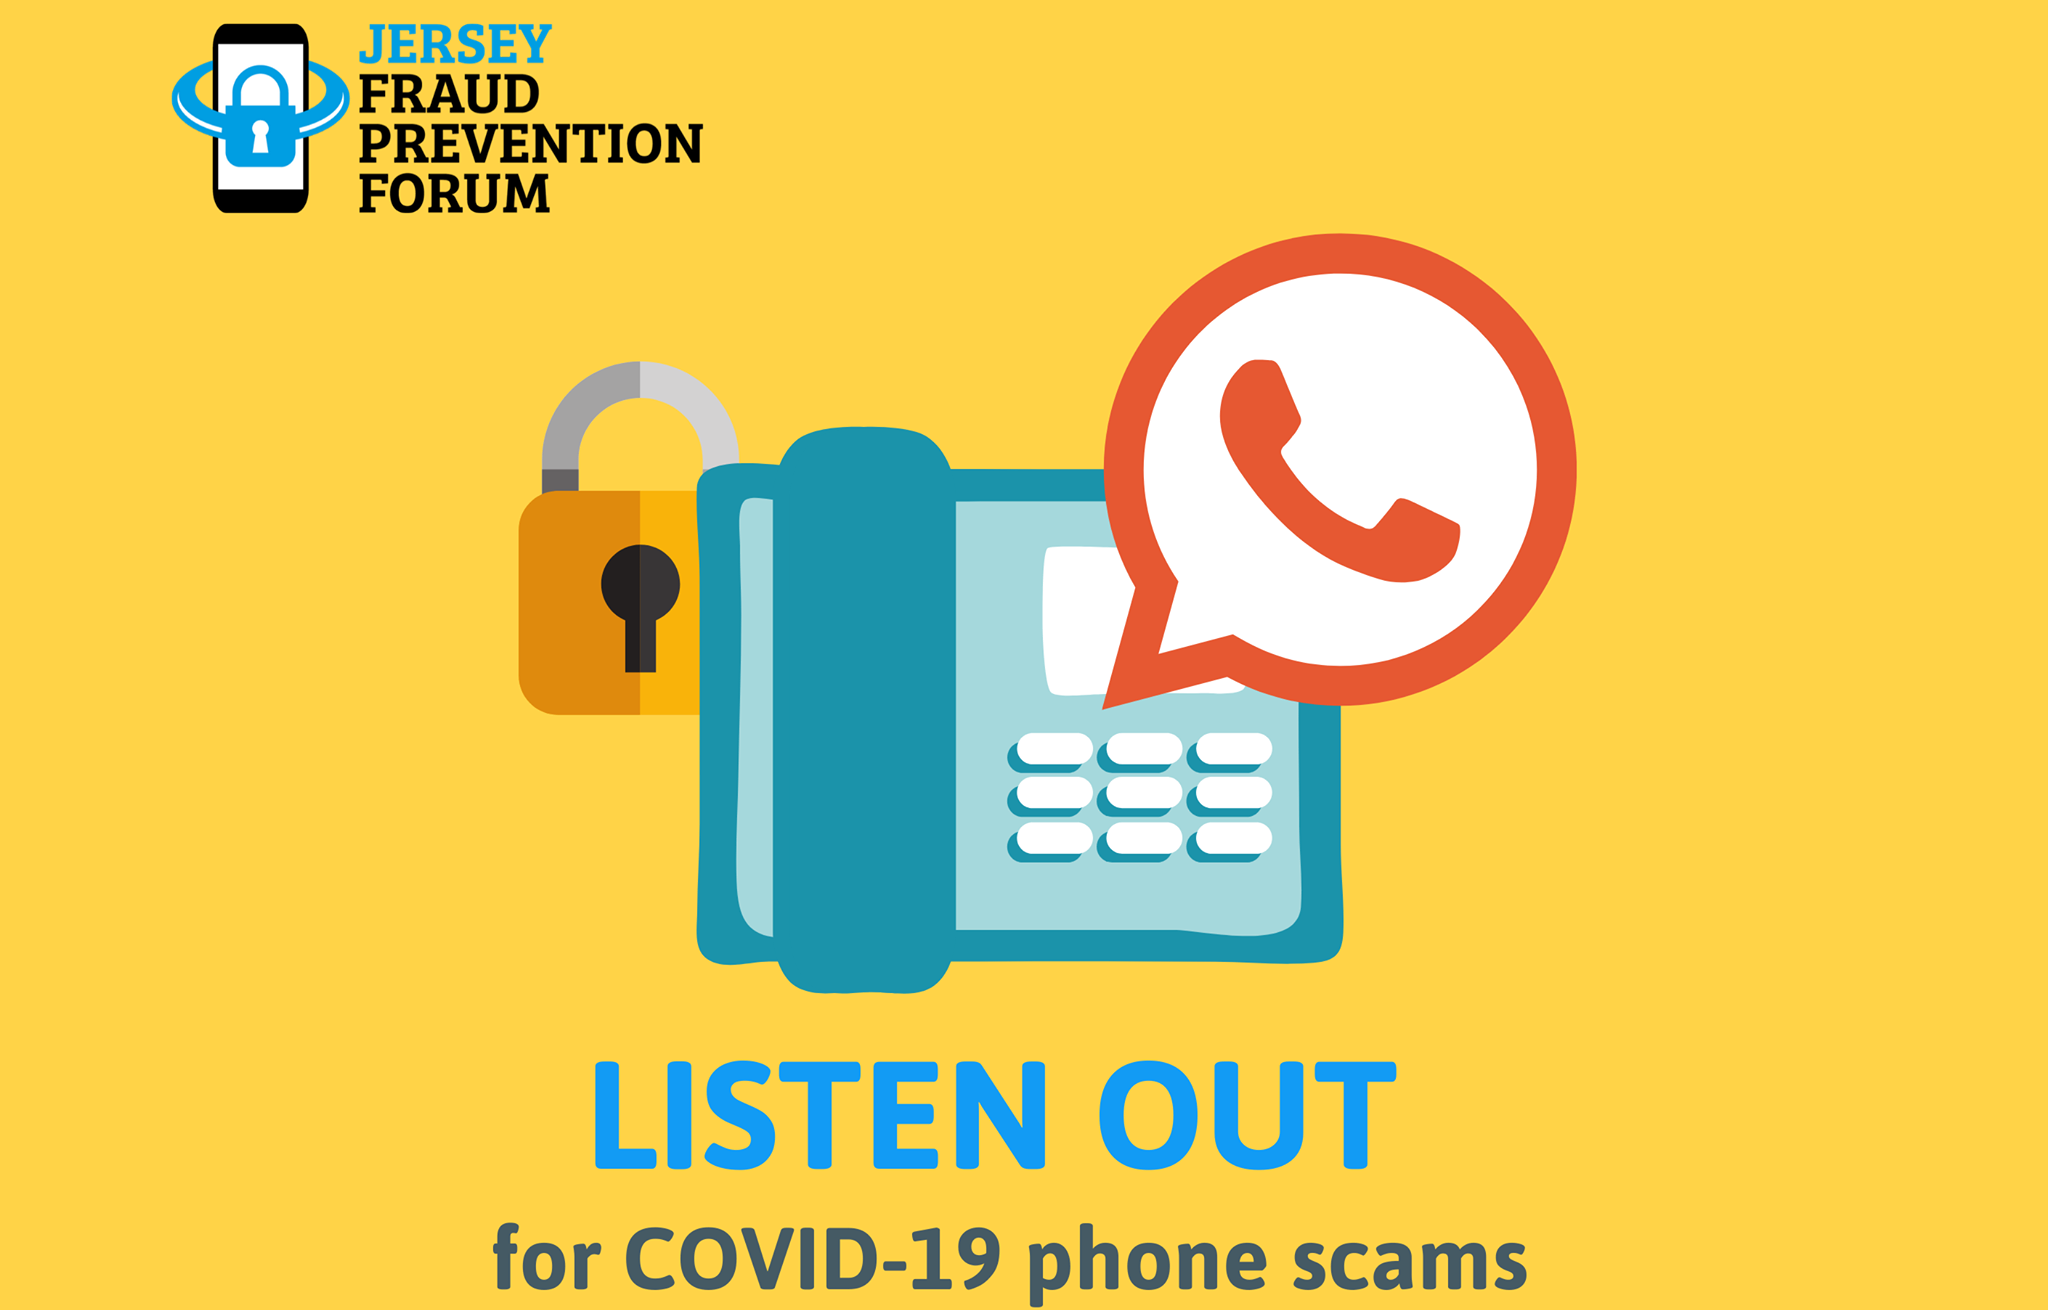 Warning of COVID-19 phone scams